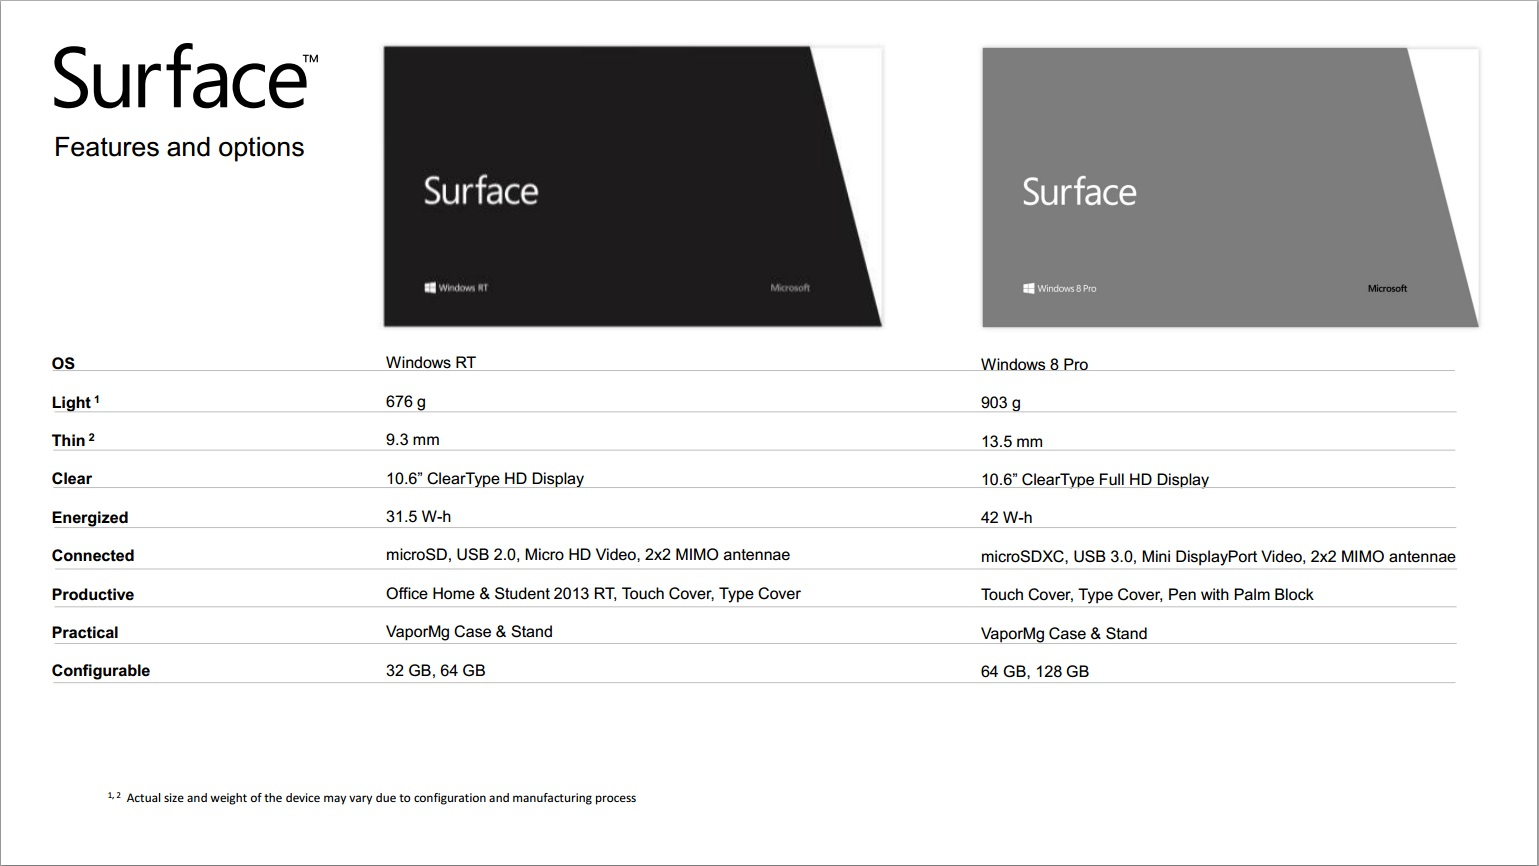 microsoft surface windows rt vs windows 8 pro comparison